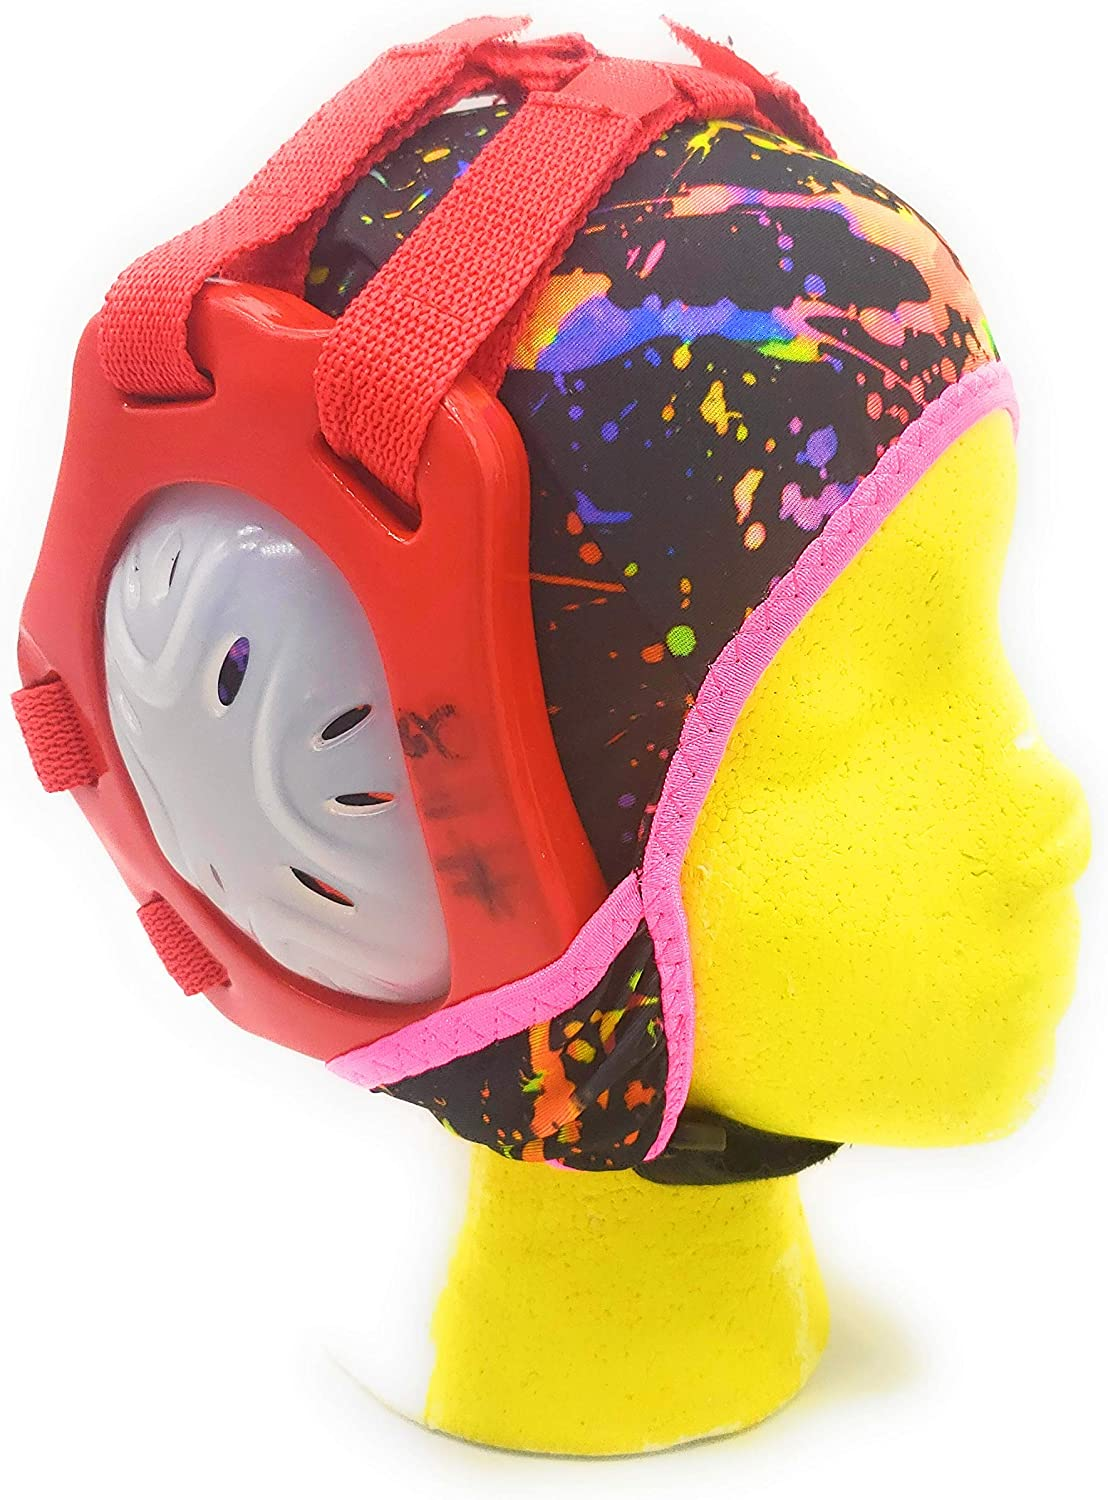 Wrestling Hair Cap - Under The Headgear Style - Paint Splatter